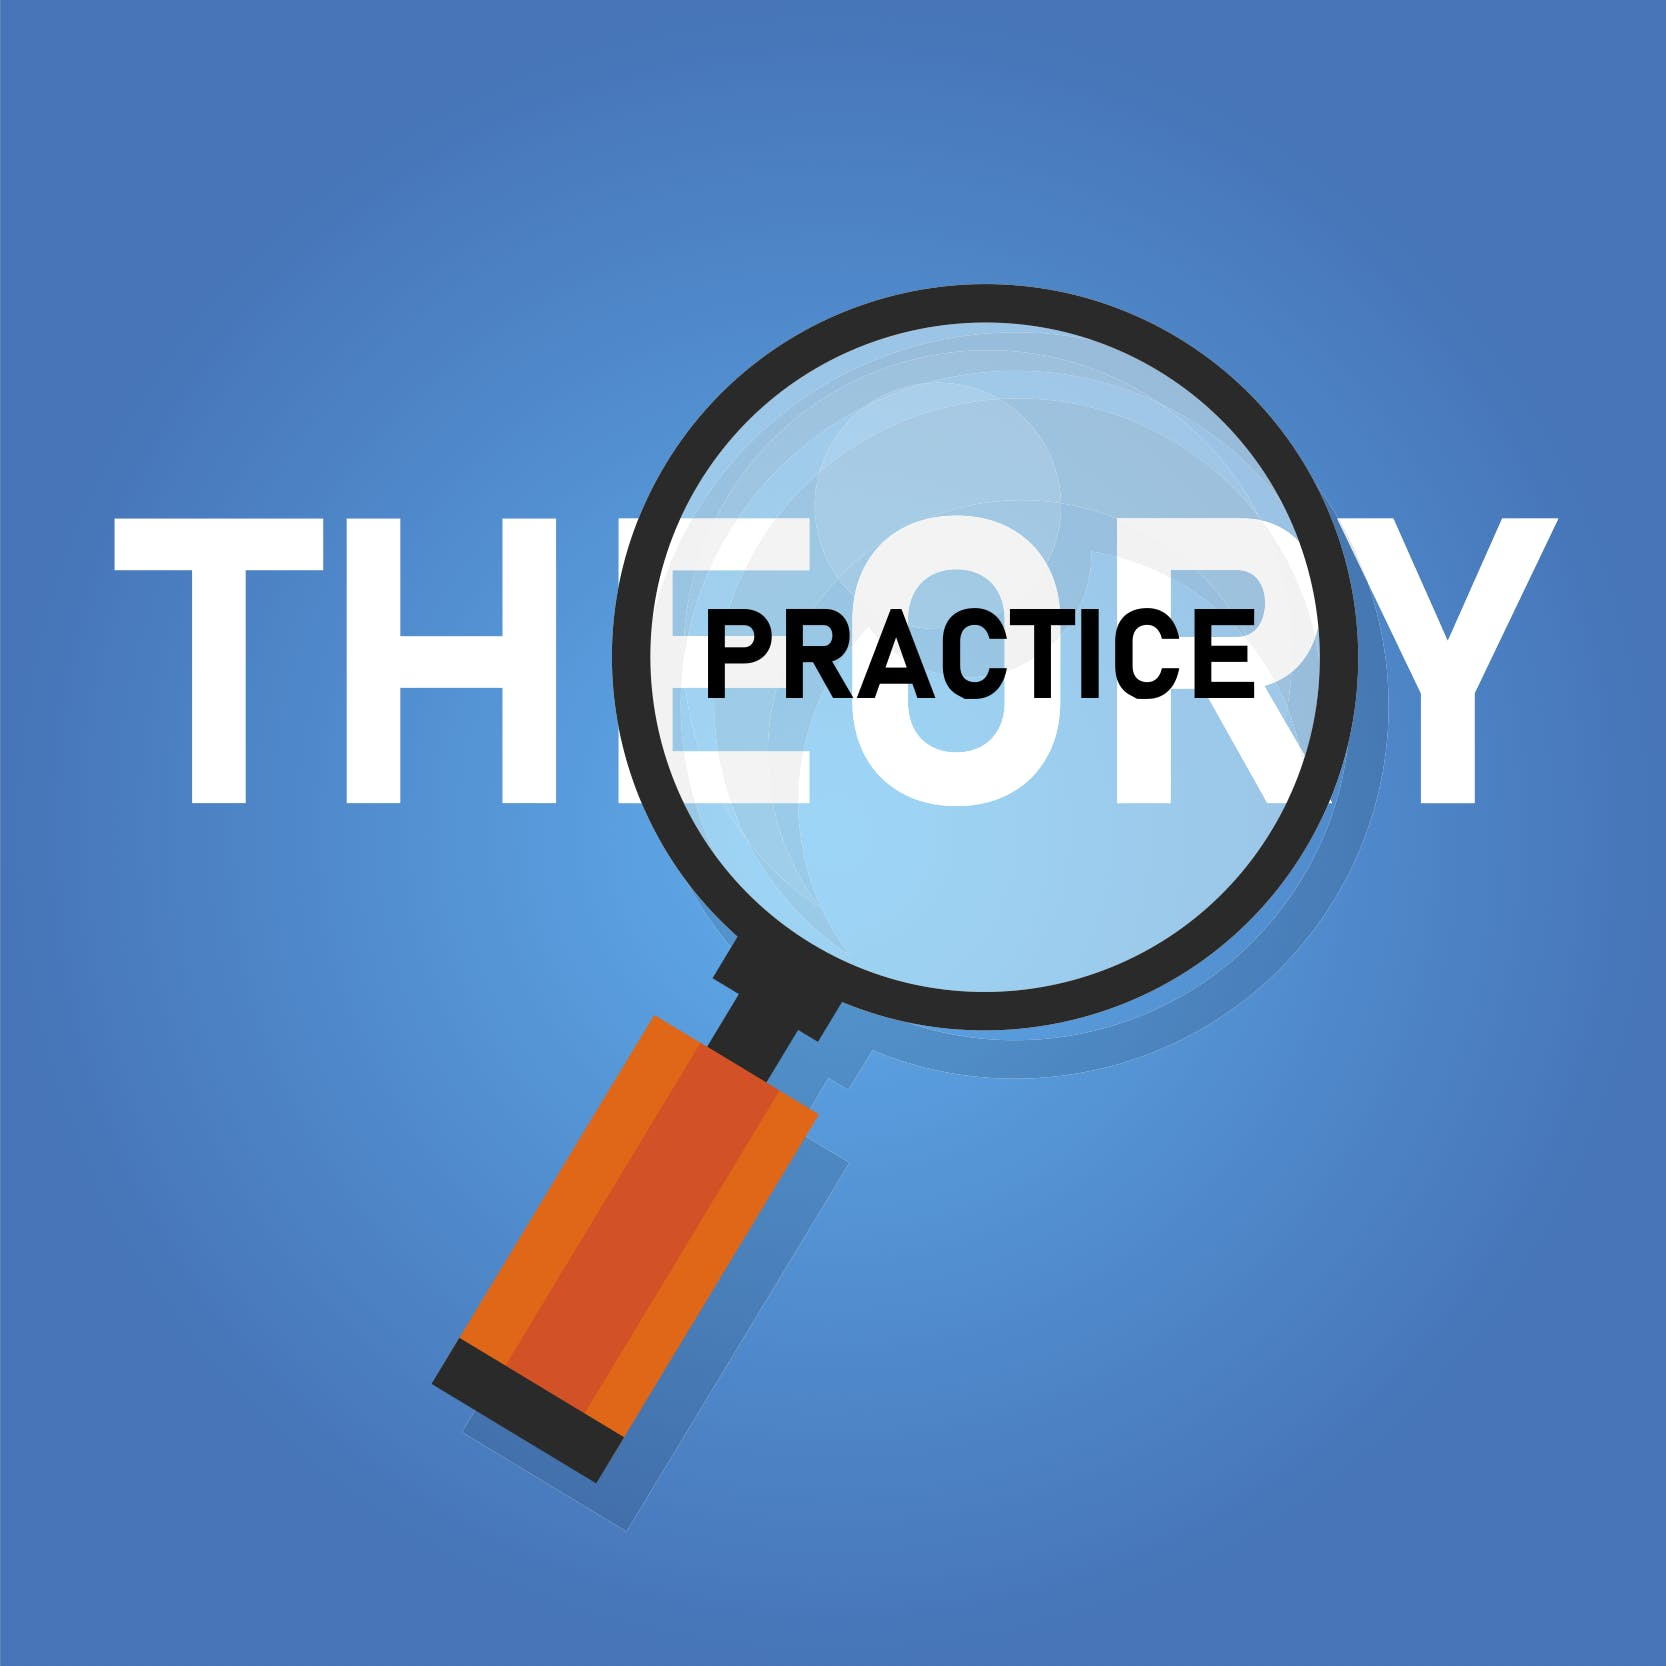 Theory into Practice - TEACCH structured teac